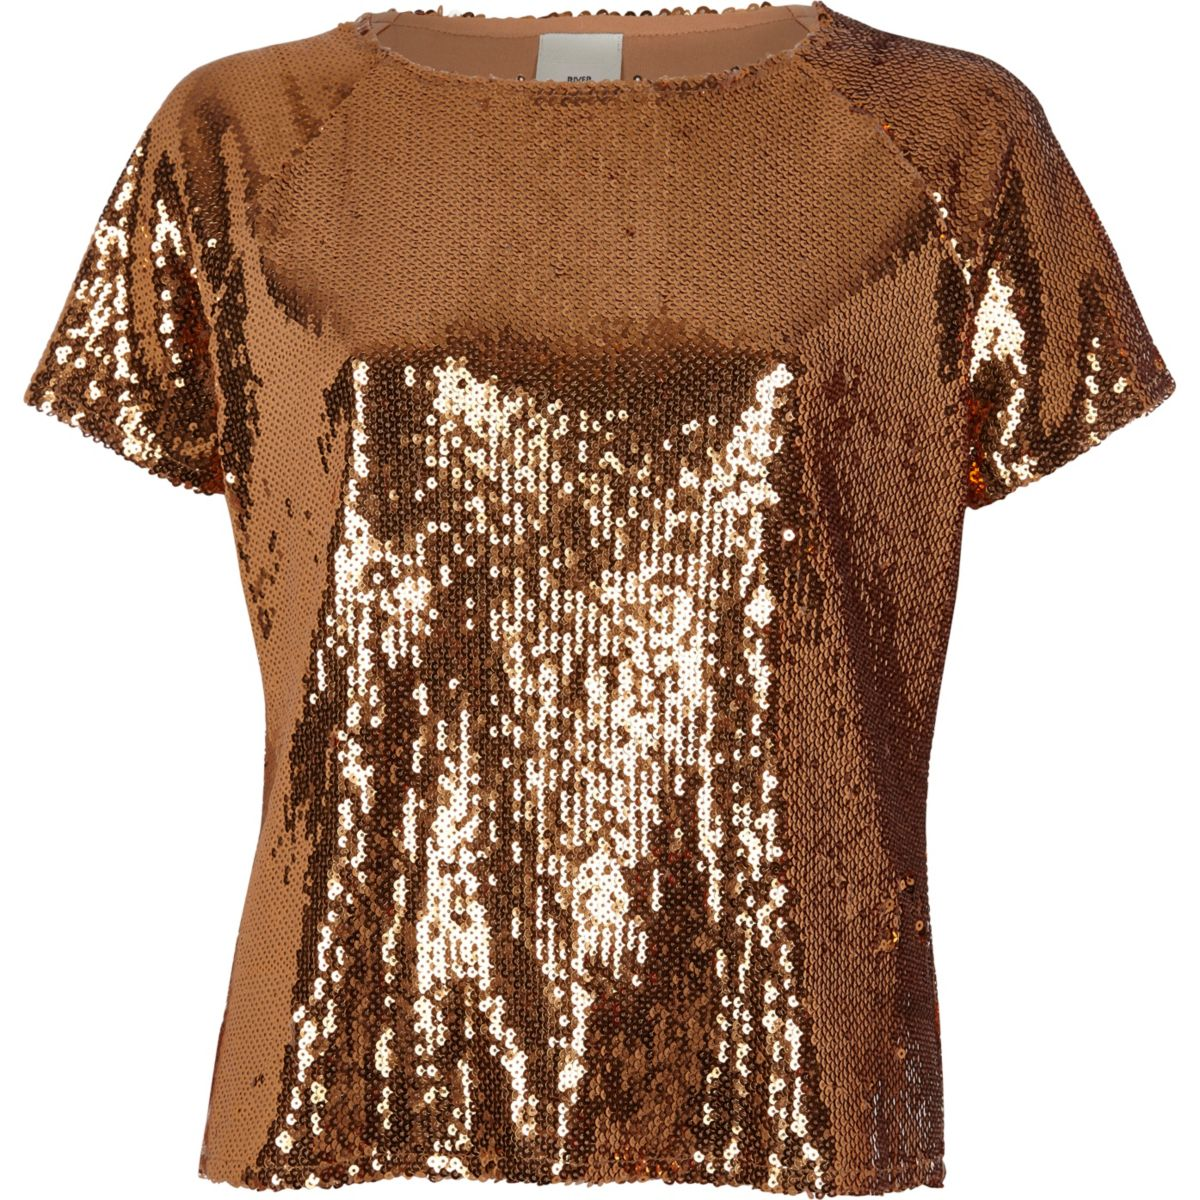 Copper Sequin Embellished T Shirt Tops Sale Women